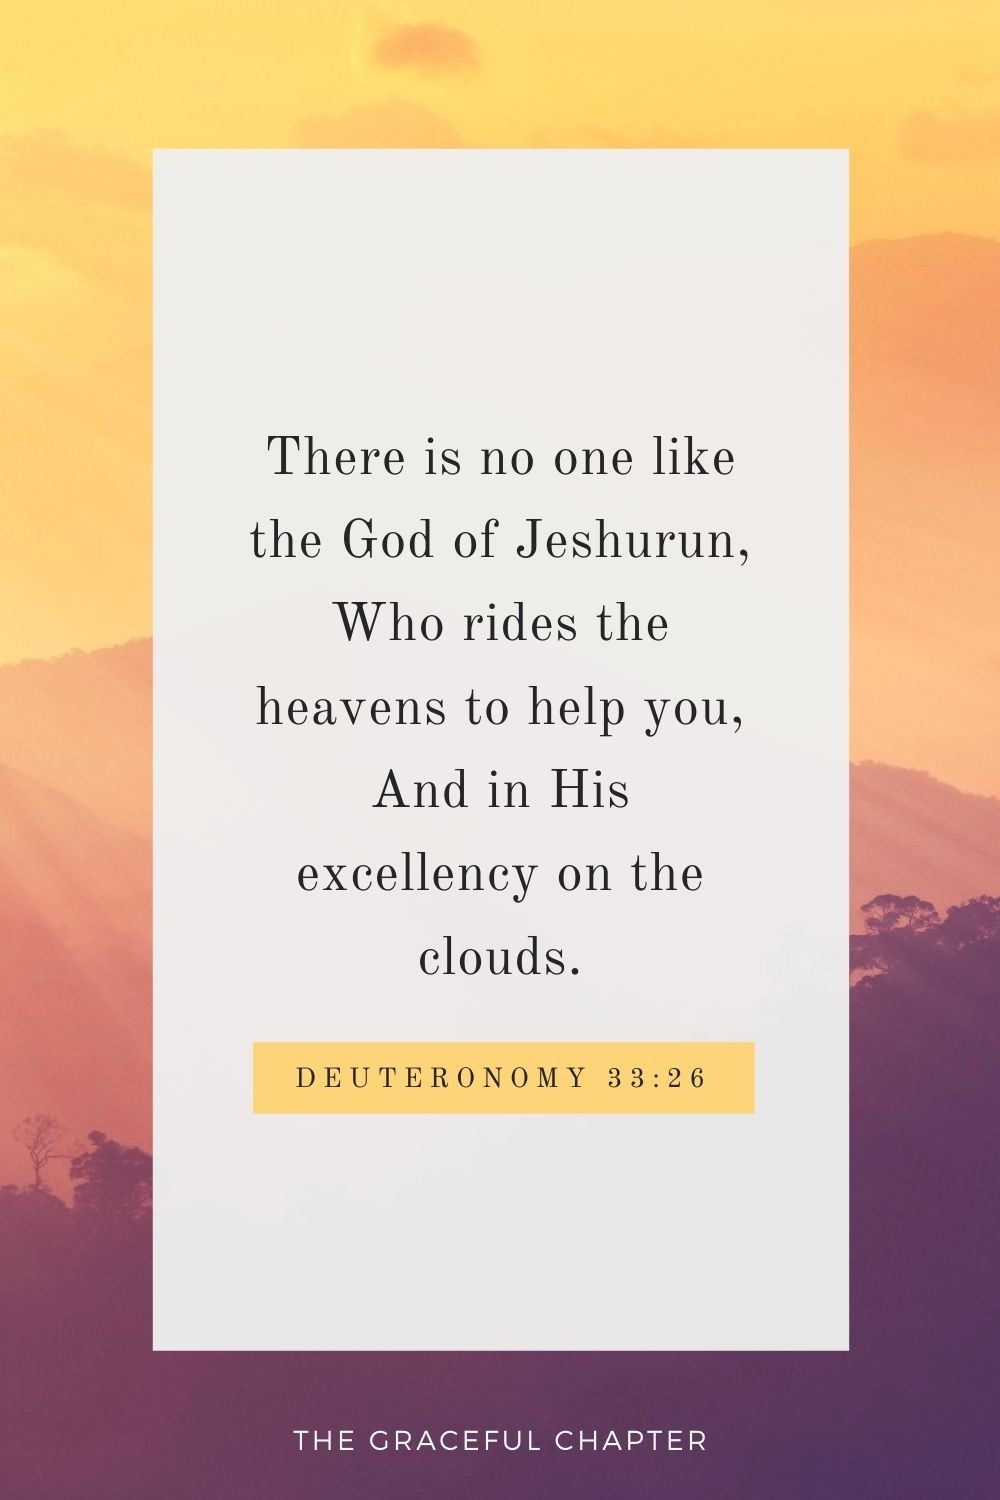 There is no one like the God of Jeshurun, Who rides the heavens to help you, And in His excellency on the clouds. Deuteronomy 33:26